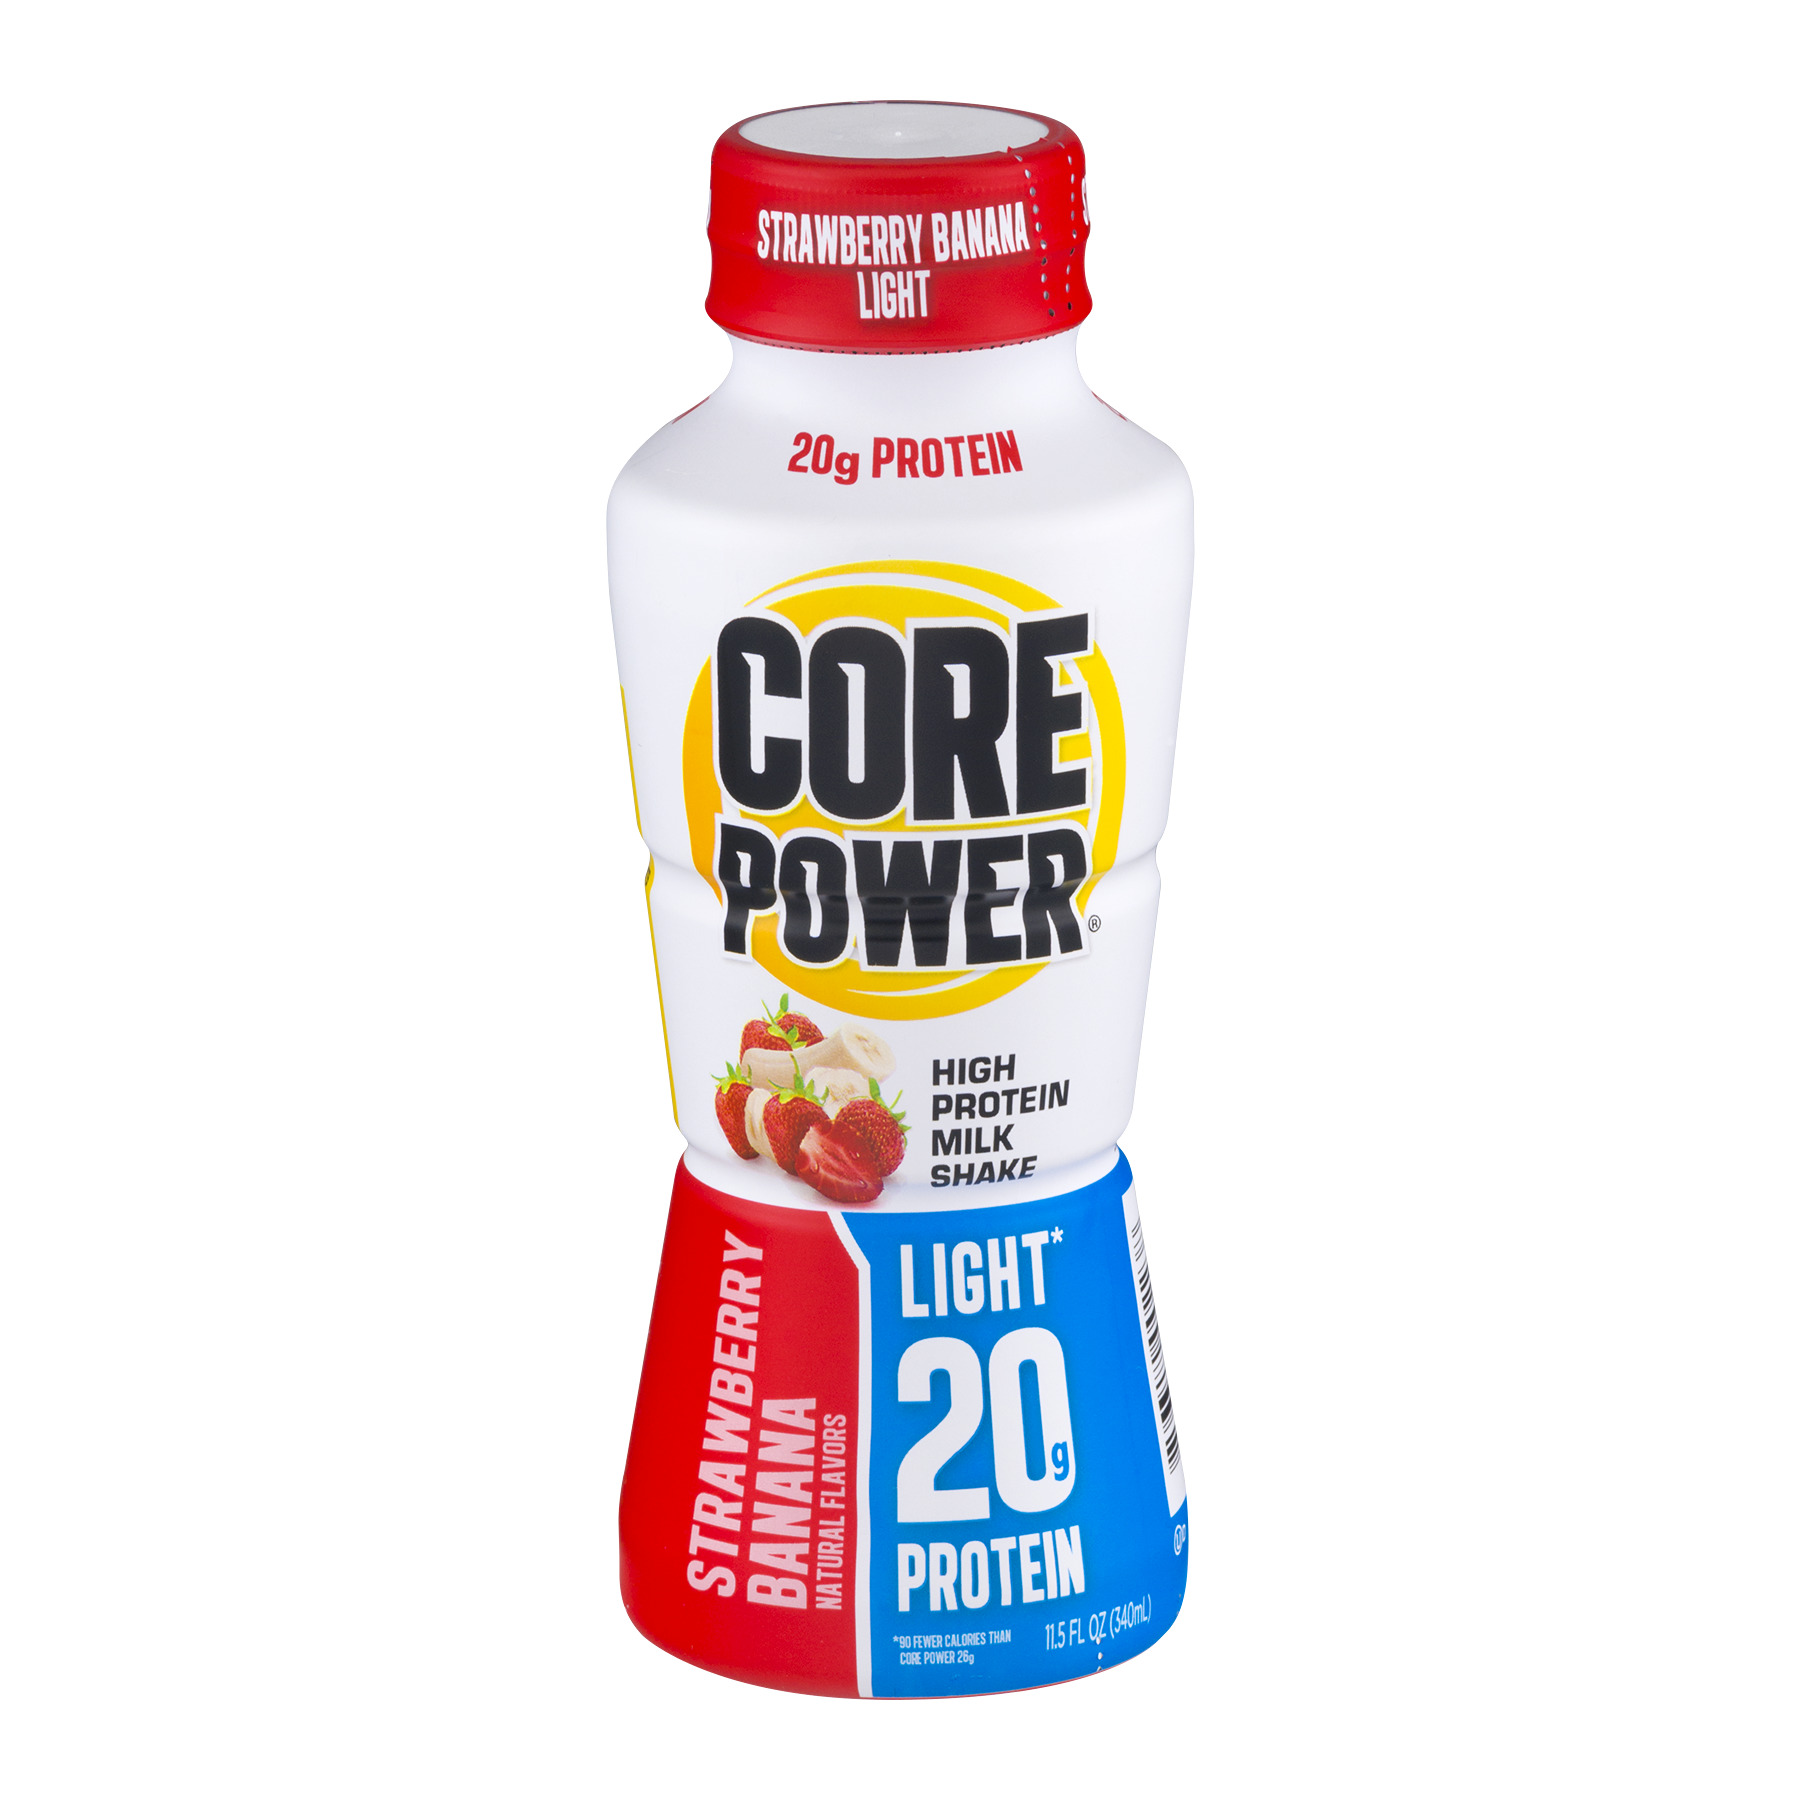 Core Power High Protein Milk Shake Light 20g Protein Strawberry Banana, 11.5 FL OZ